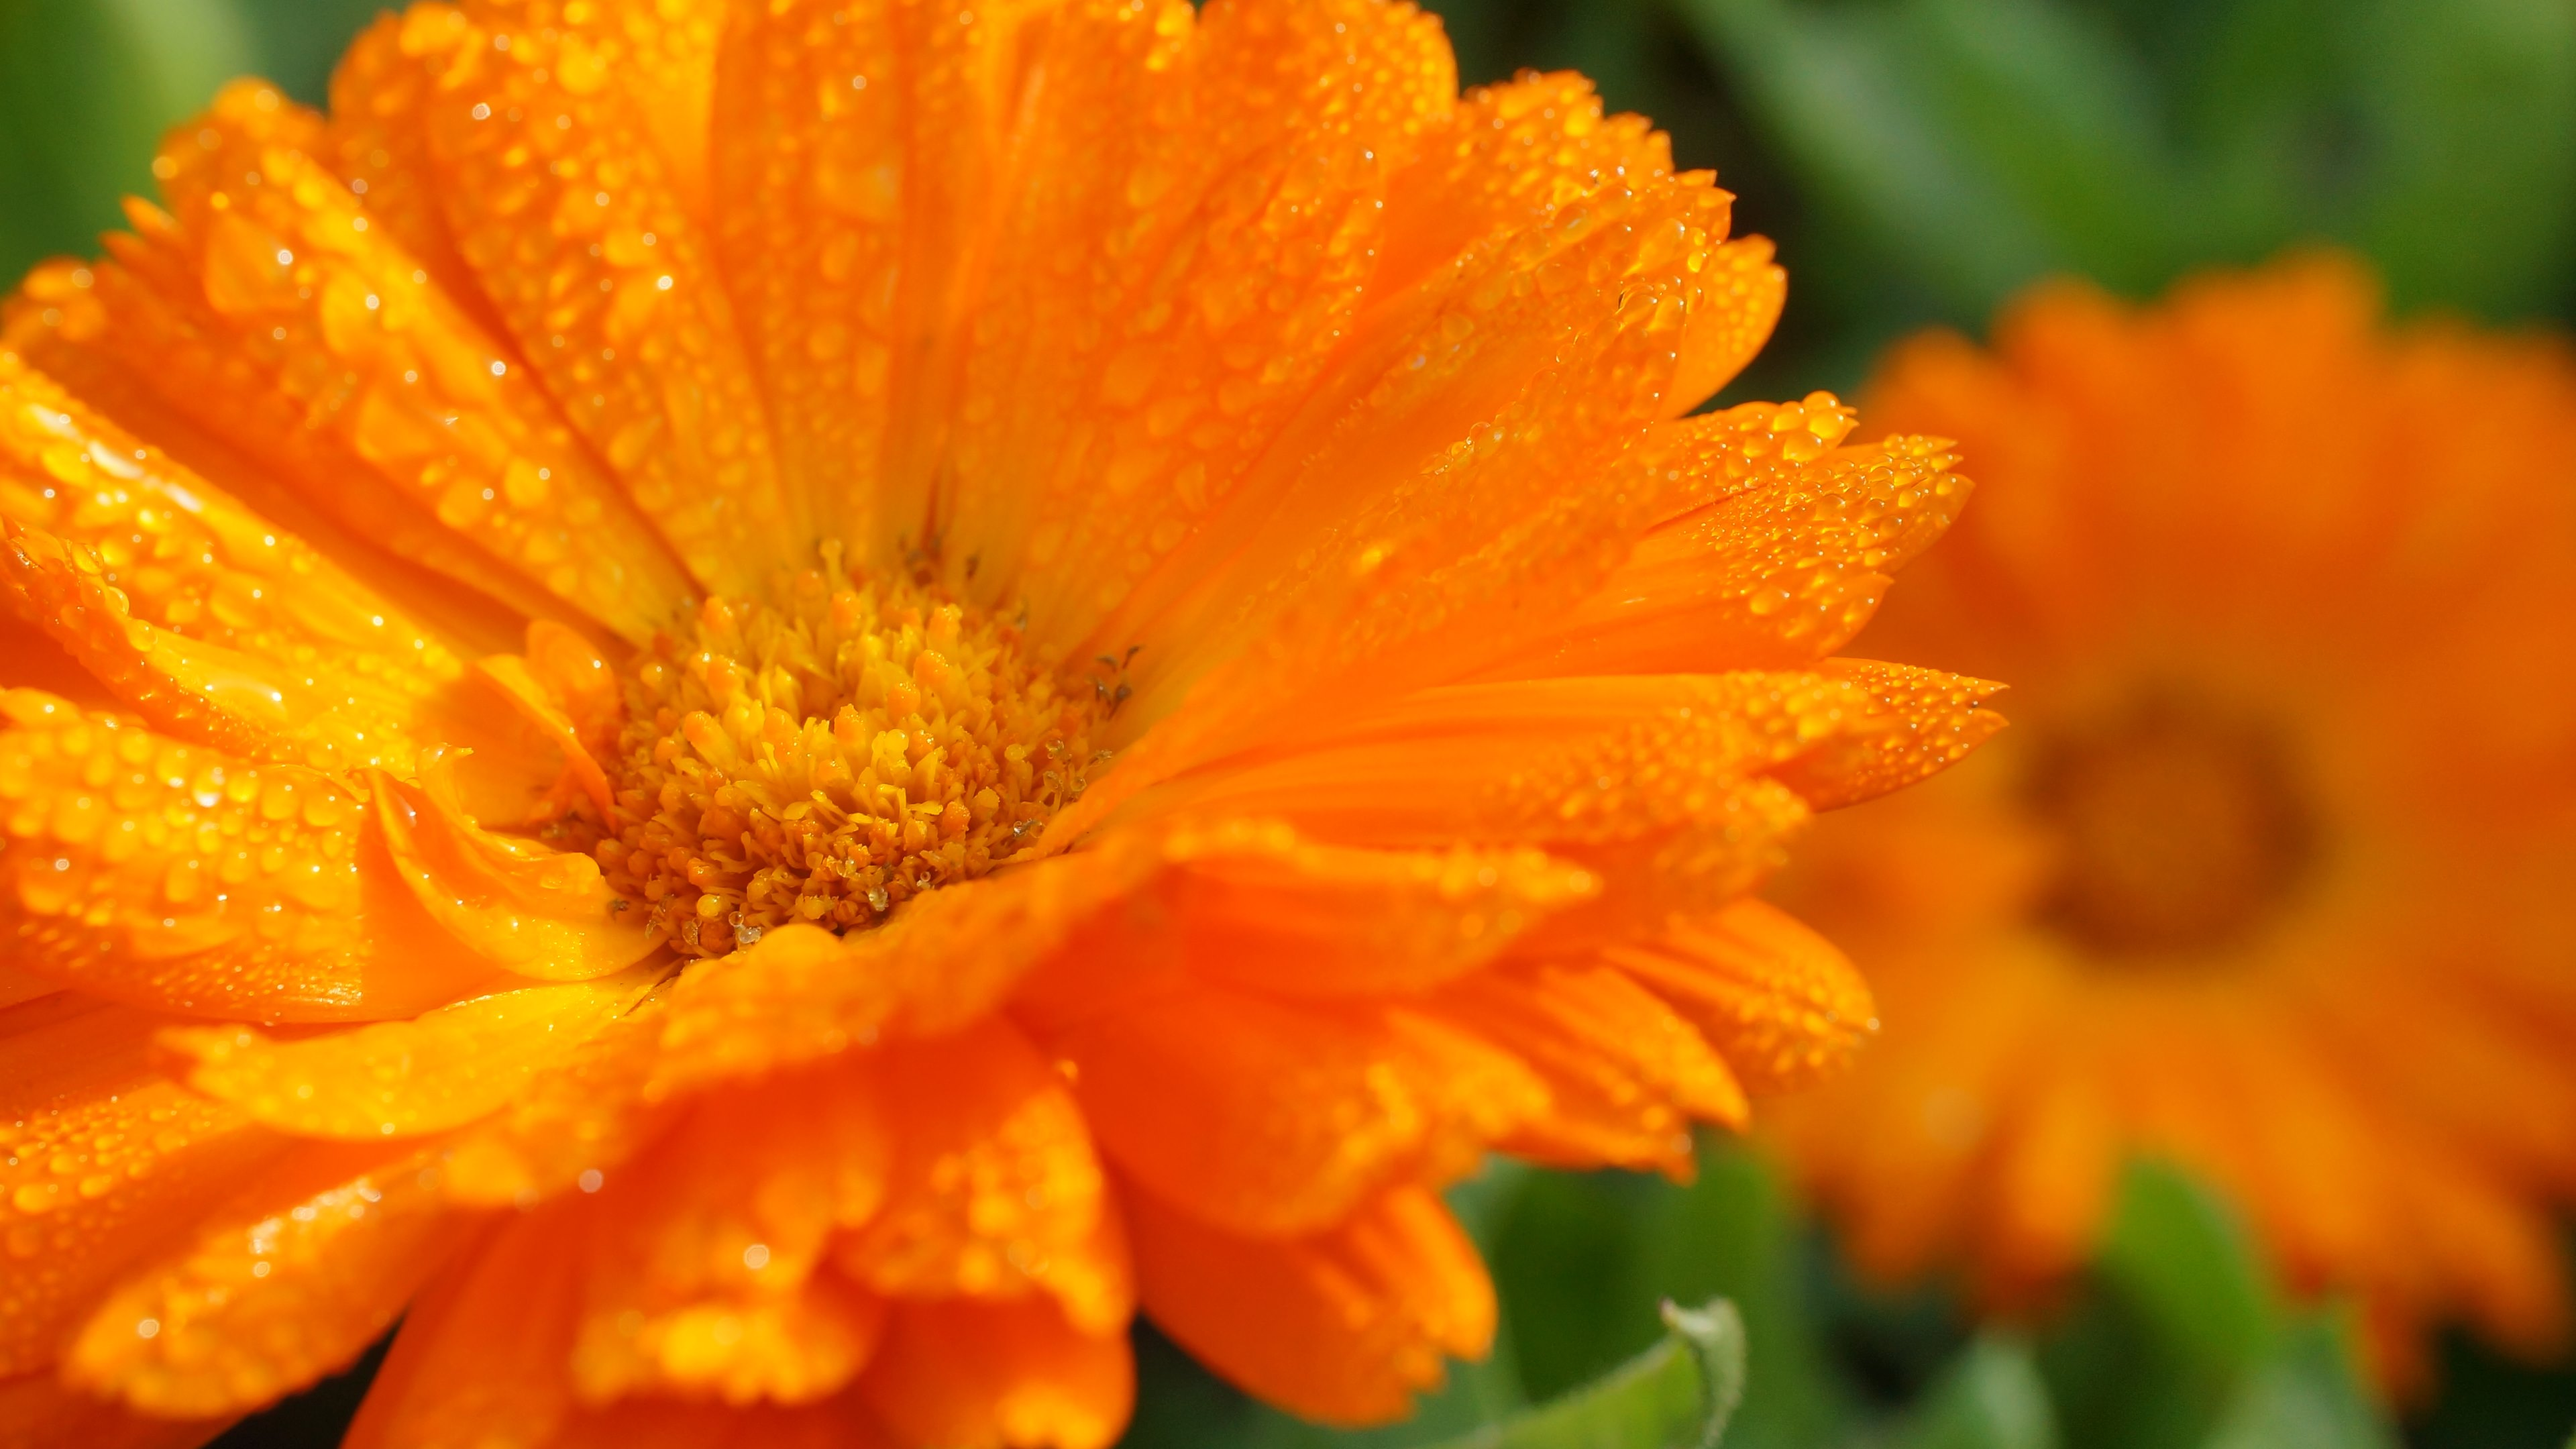 4K Orange Flowers Wallpapers High Quality